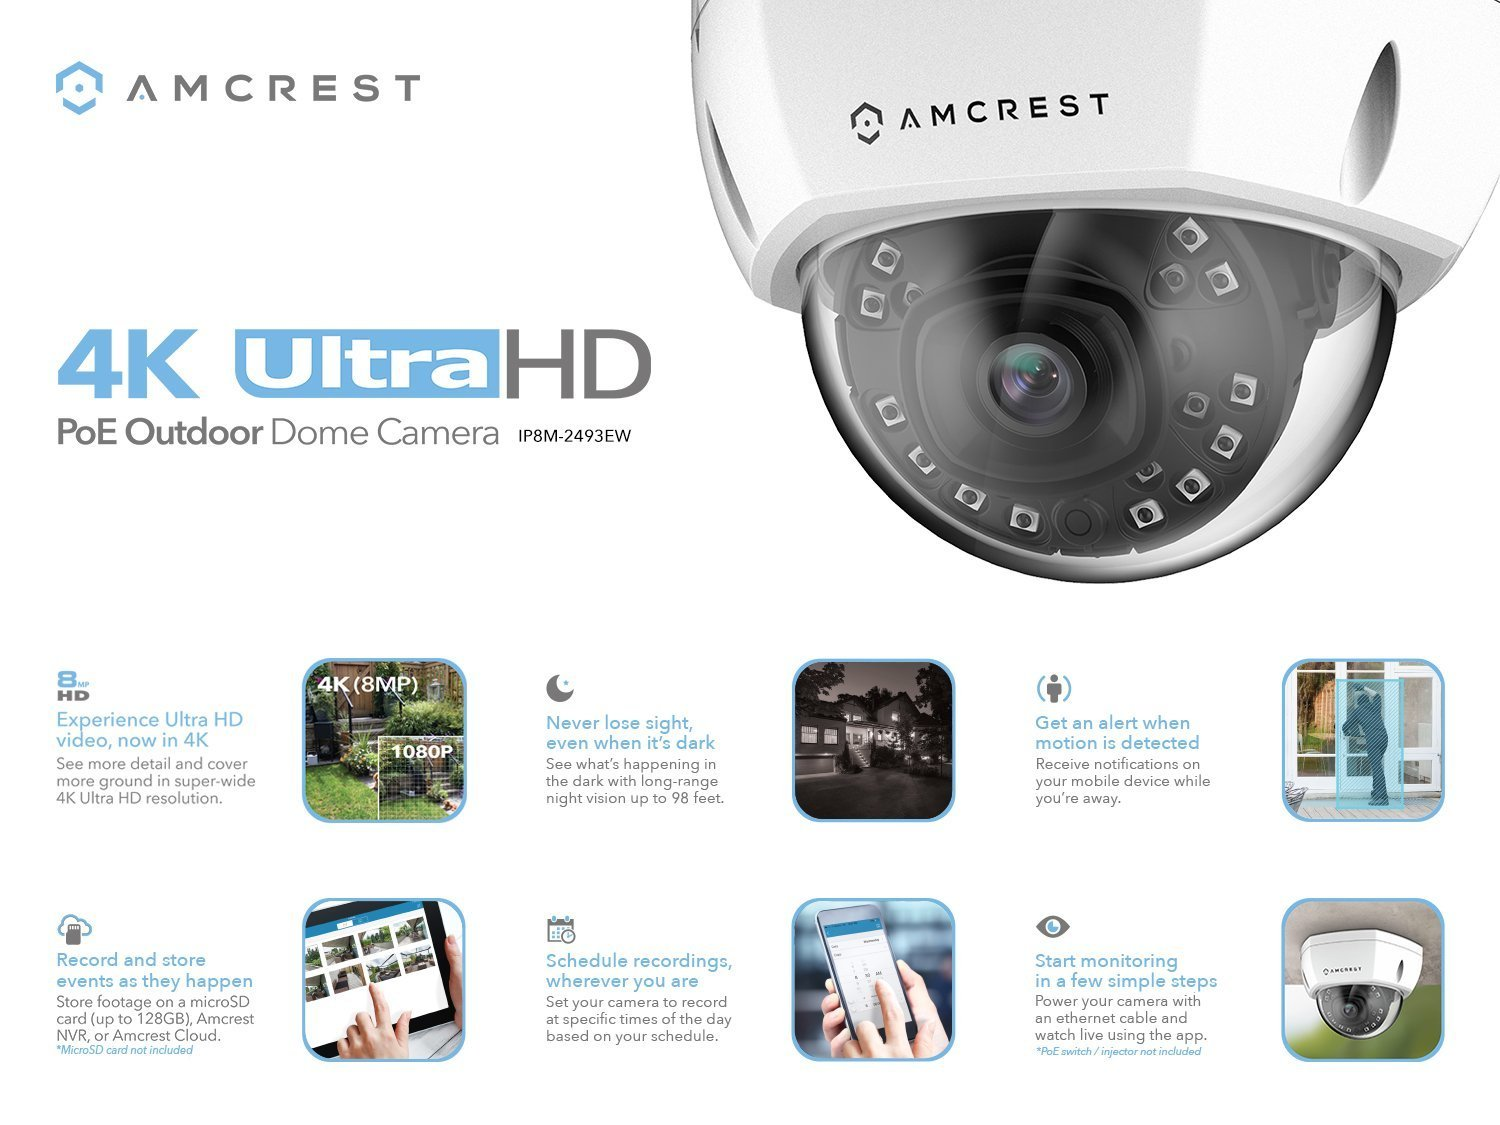 Best security camera AmcrestUltraHD